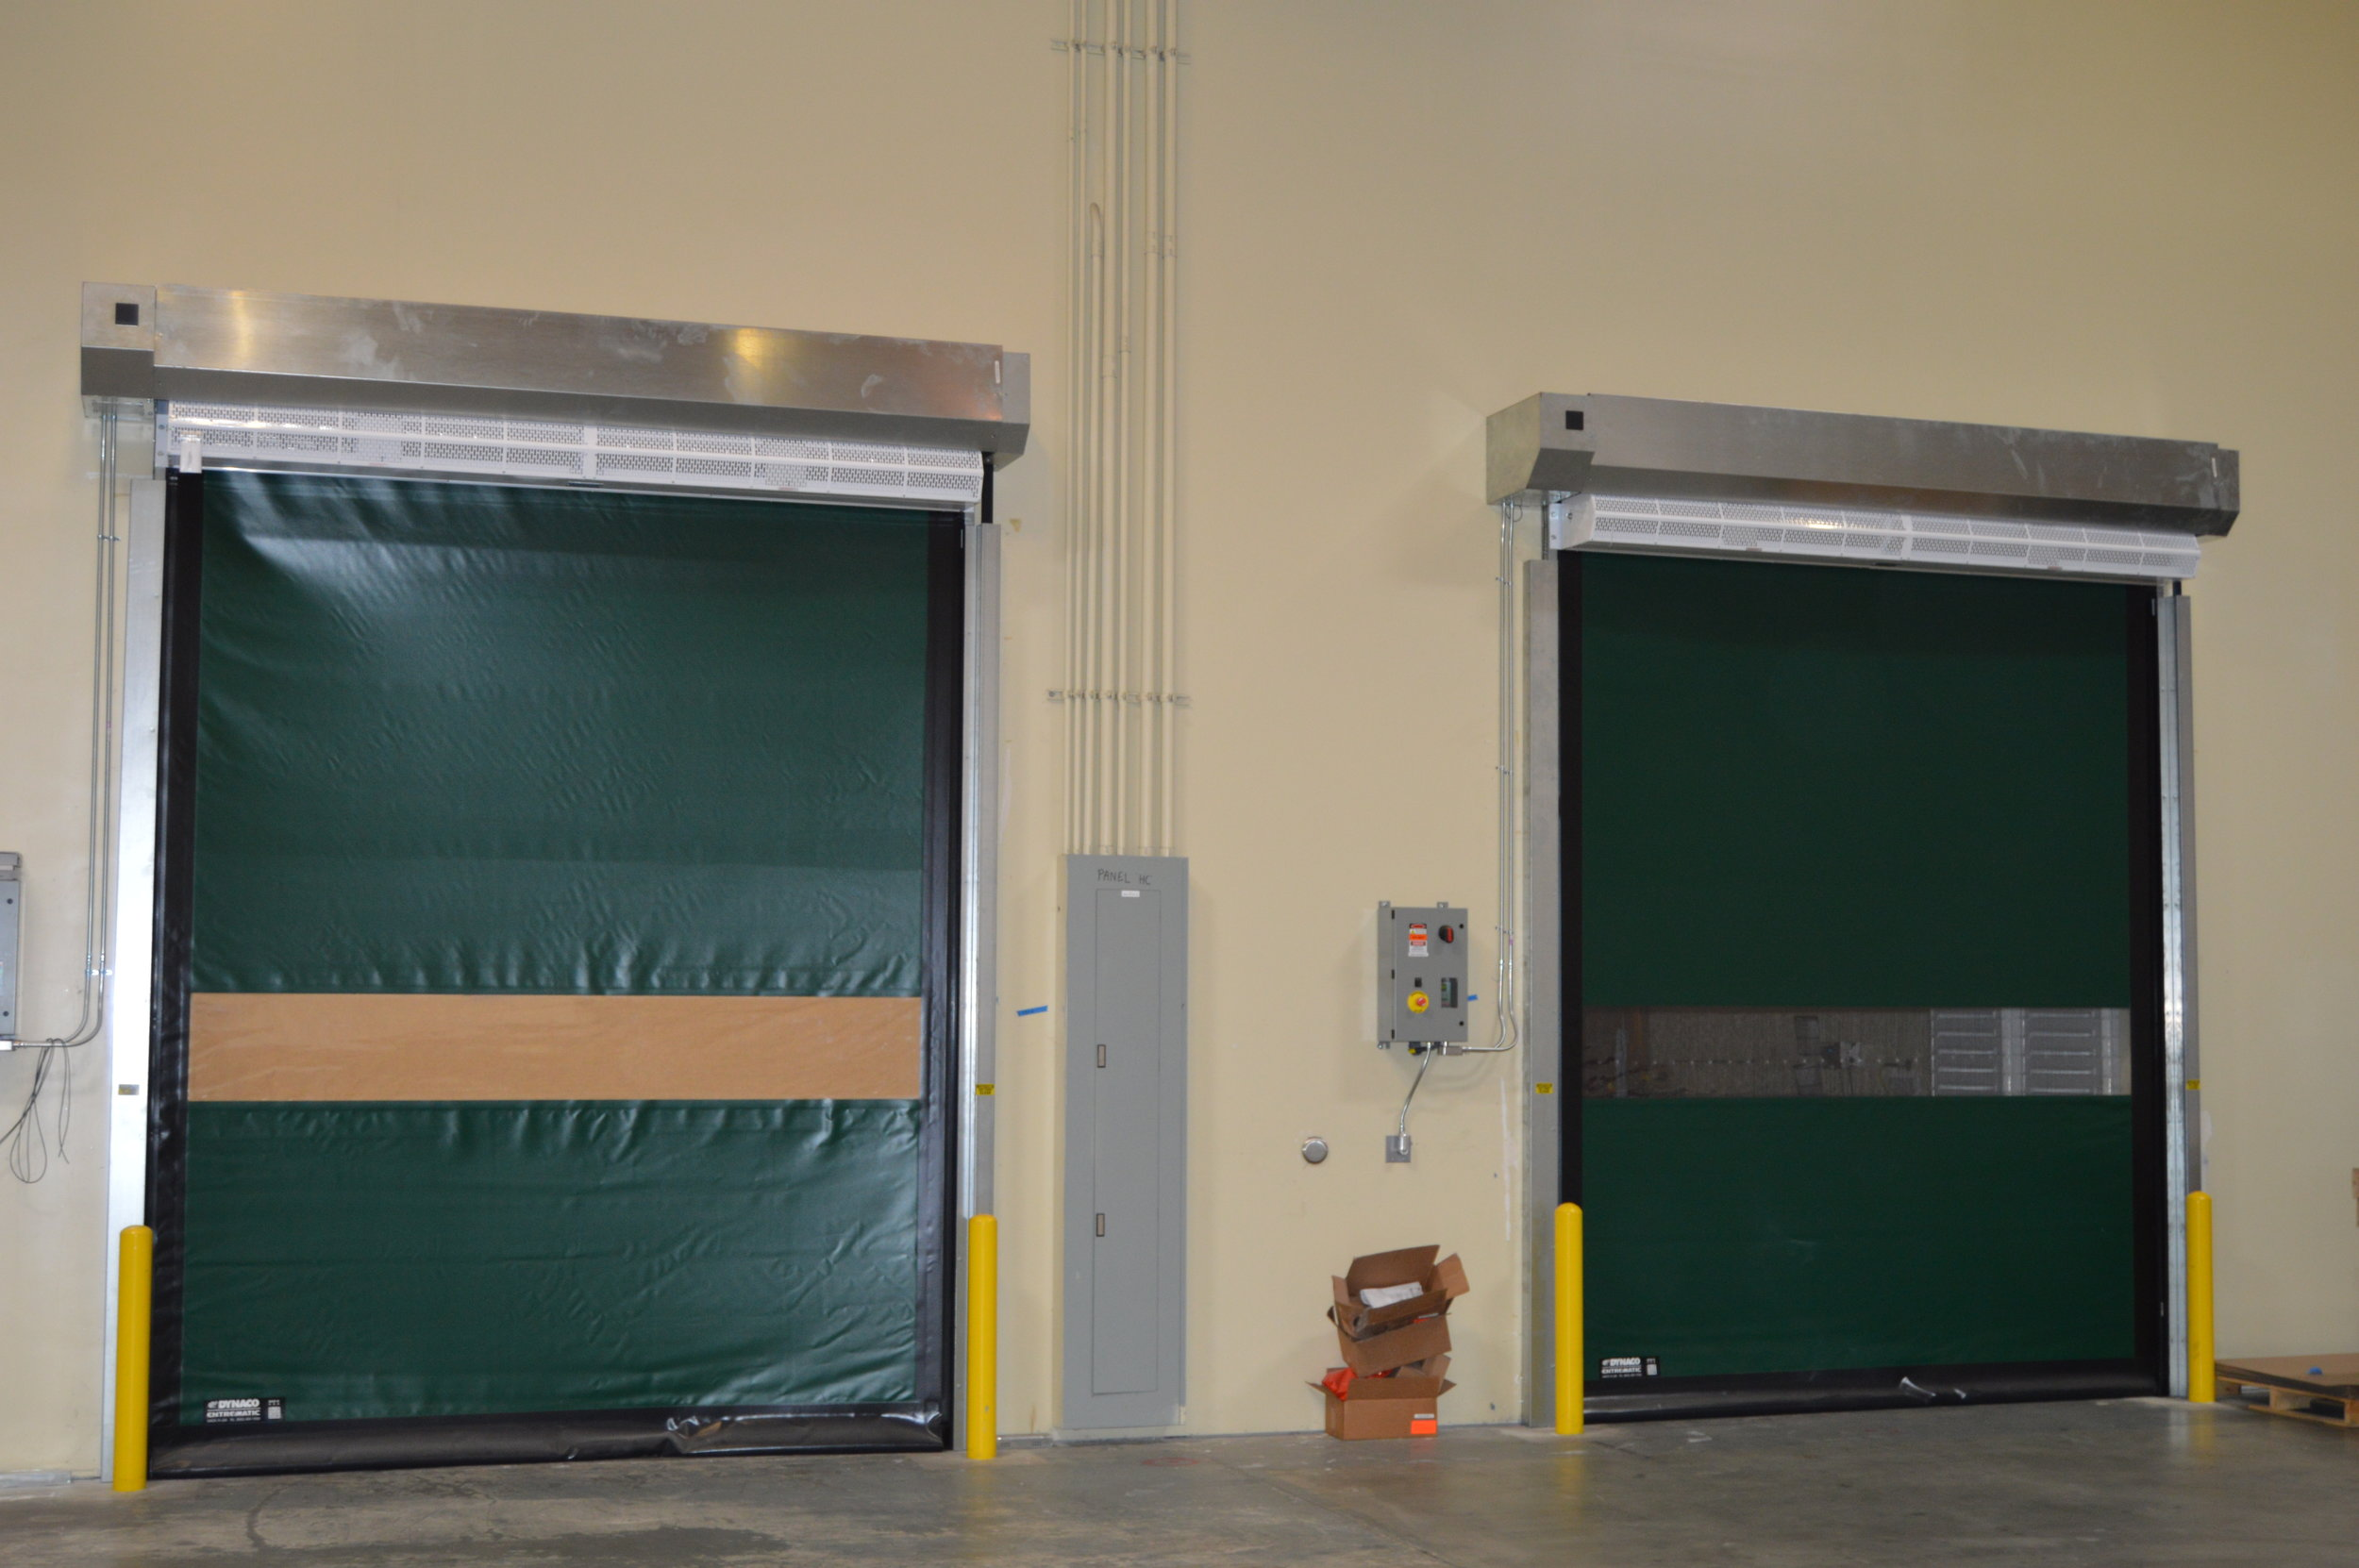 High Speed Doors - High-Speed Rolling Doors are engineered to maximize space, create security, extreme environments, including temperature controlled areas, and for functionality and design for operational locations. We install products that provide strong, fast, and efficient solutions for large openings.